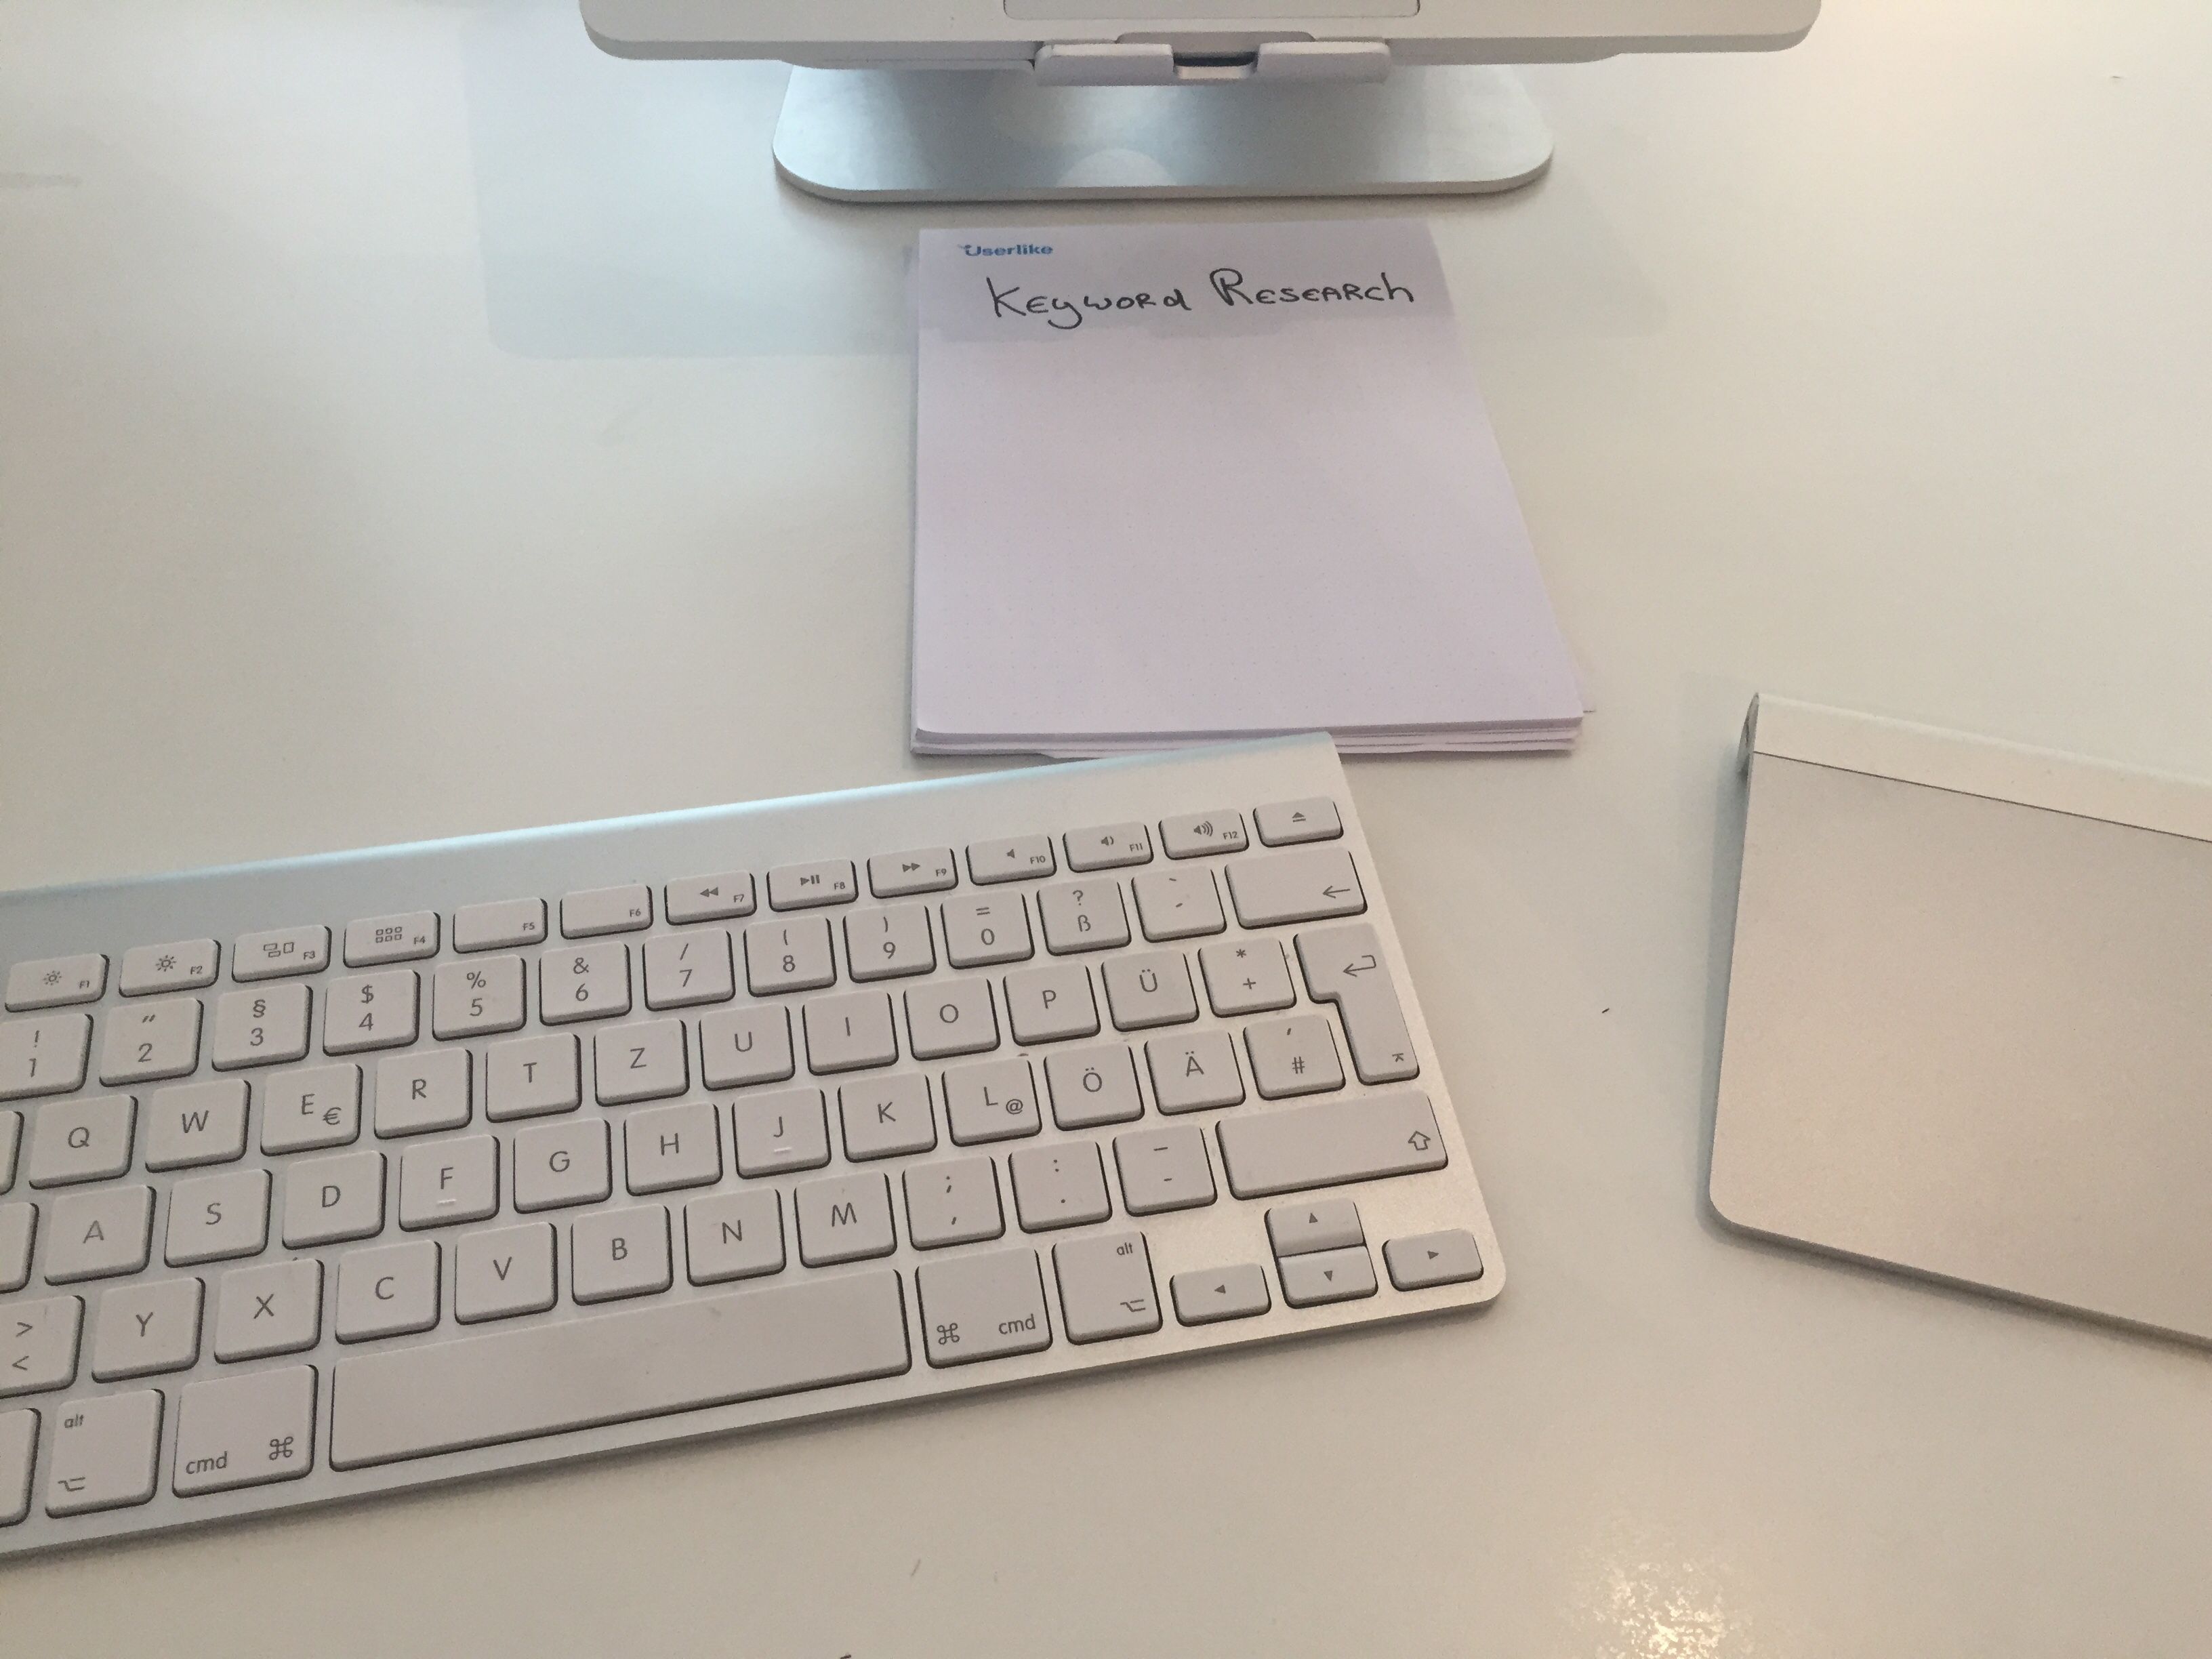 A simple notebook next to keyboard.